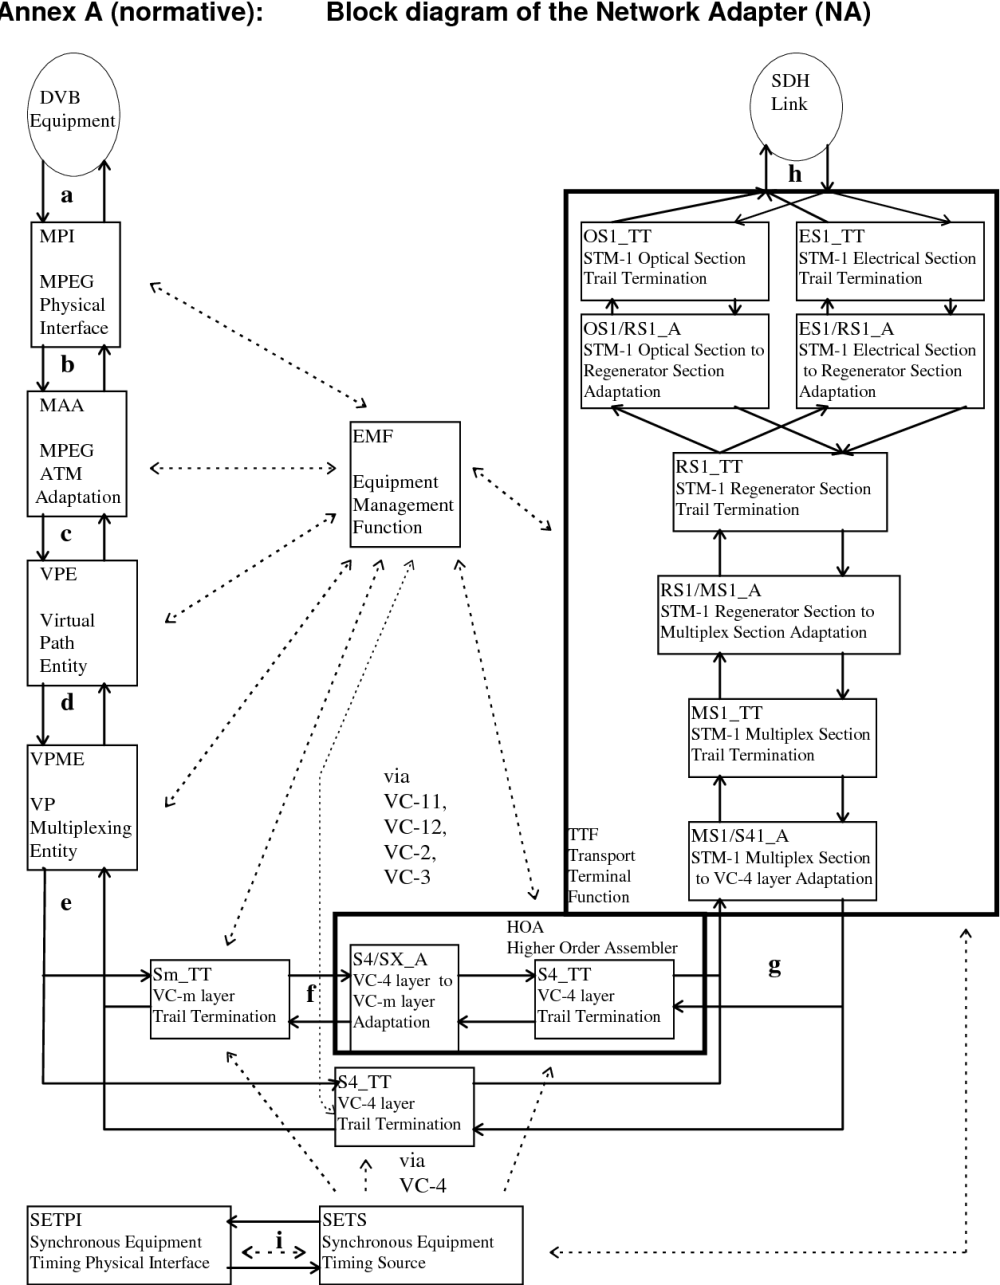 medium resolution of figure a 1 functional blocks of the sdh network adapter